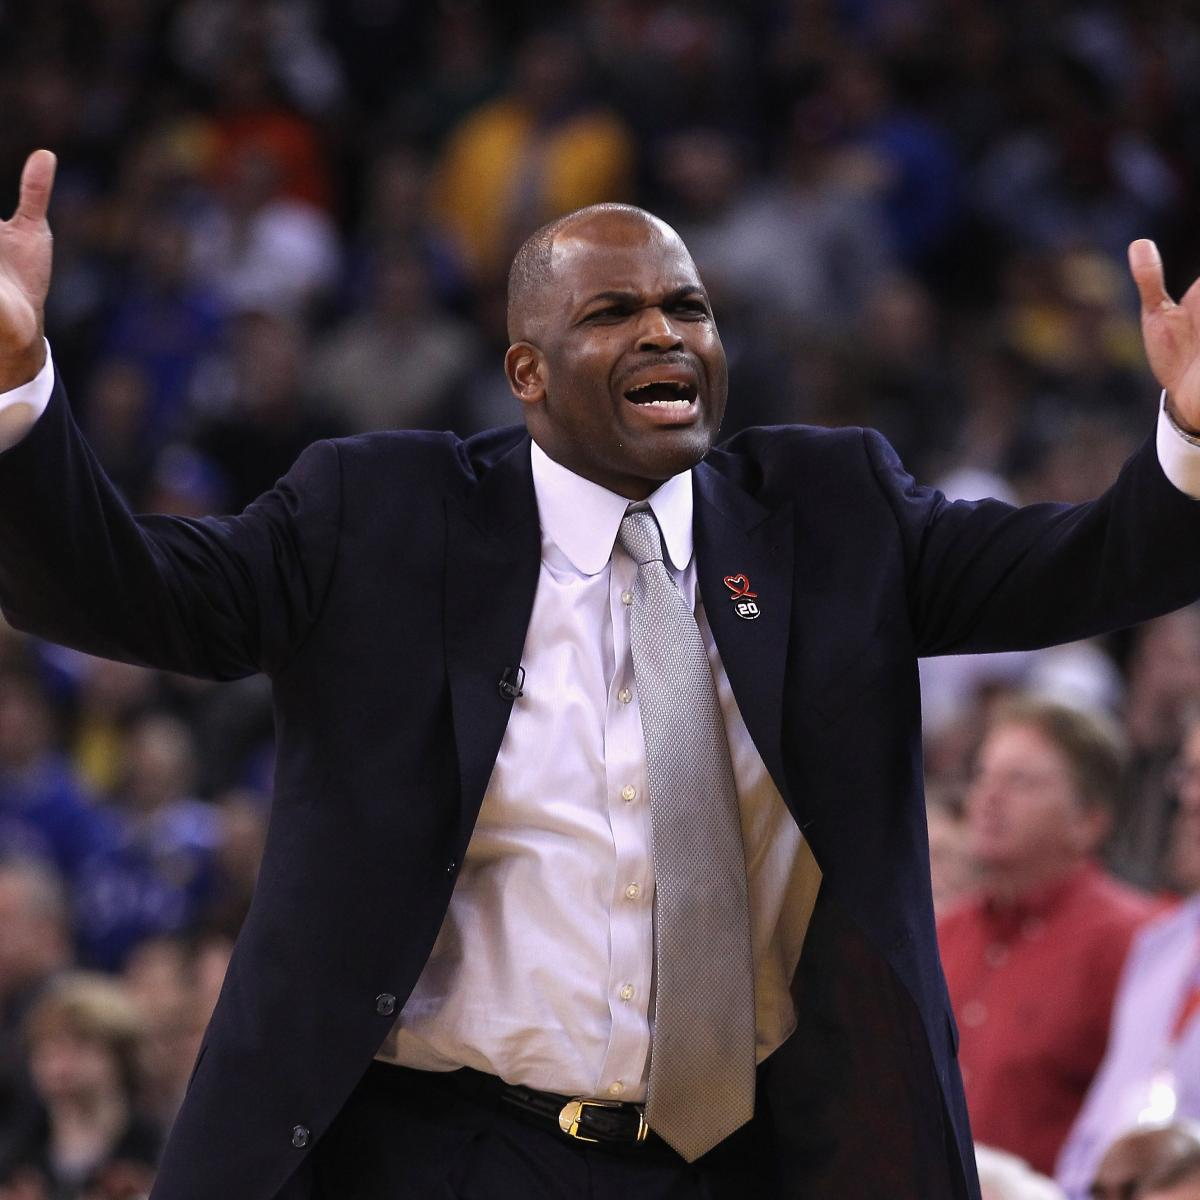 Blazers Head Coach: Nate McMillan Fired By Blazers After 6-Plus Seasons